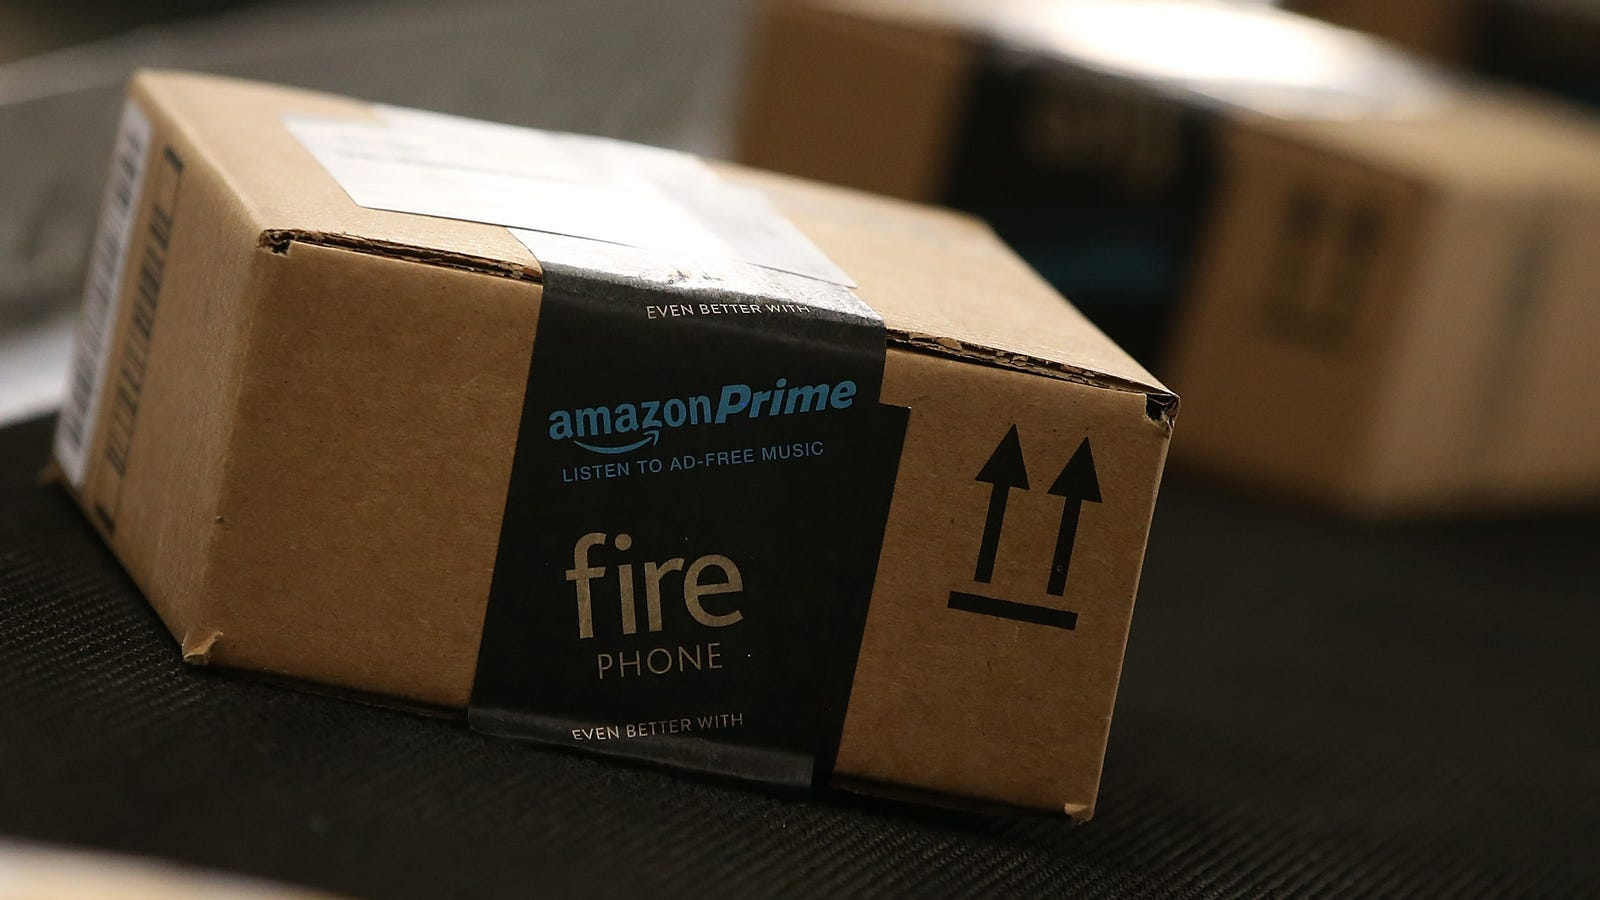 After Destroying Brick and Mortars, Amazon Reportedly Planning to Cut Ties With Thousands of Small Vendors - Gizmodo